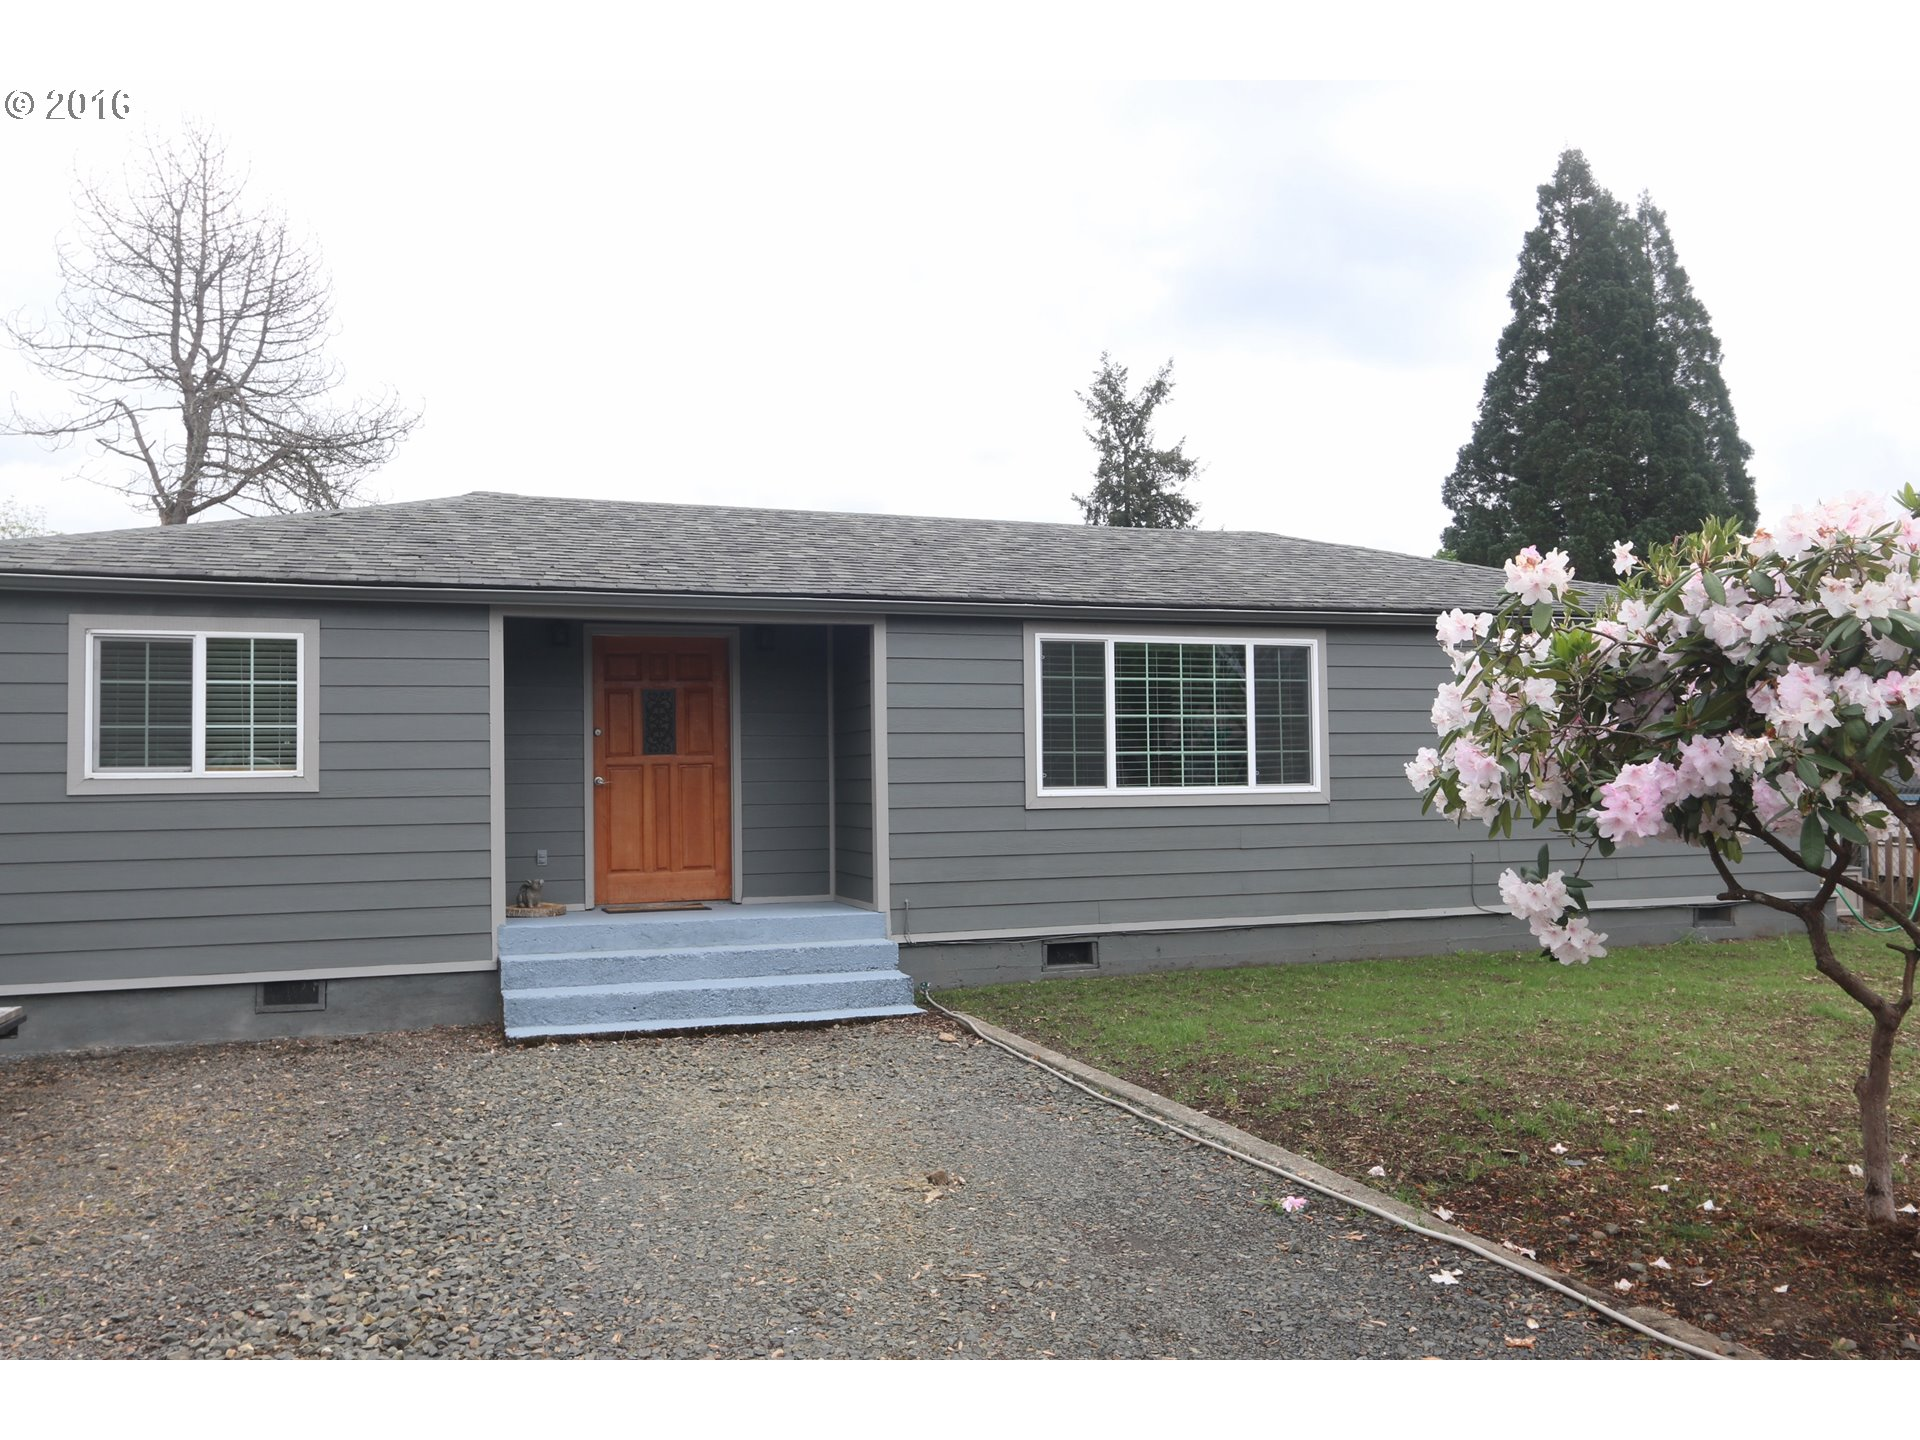 295 S 51ST PL, Springfield OR 97478